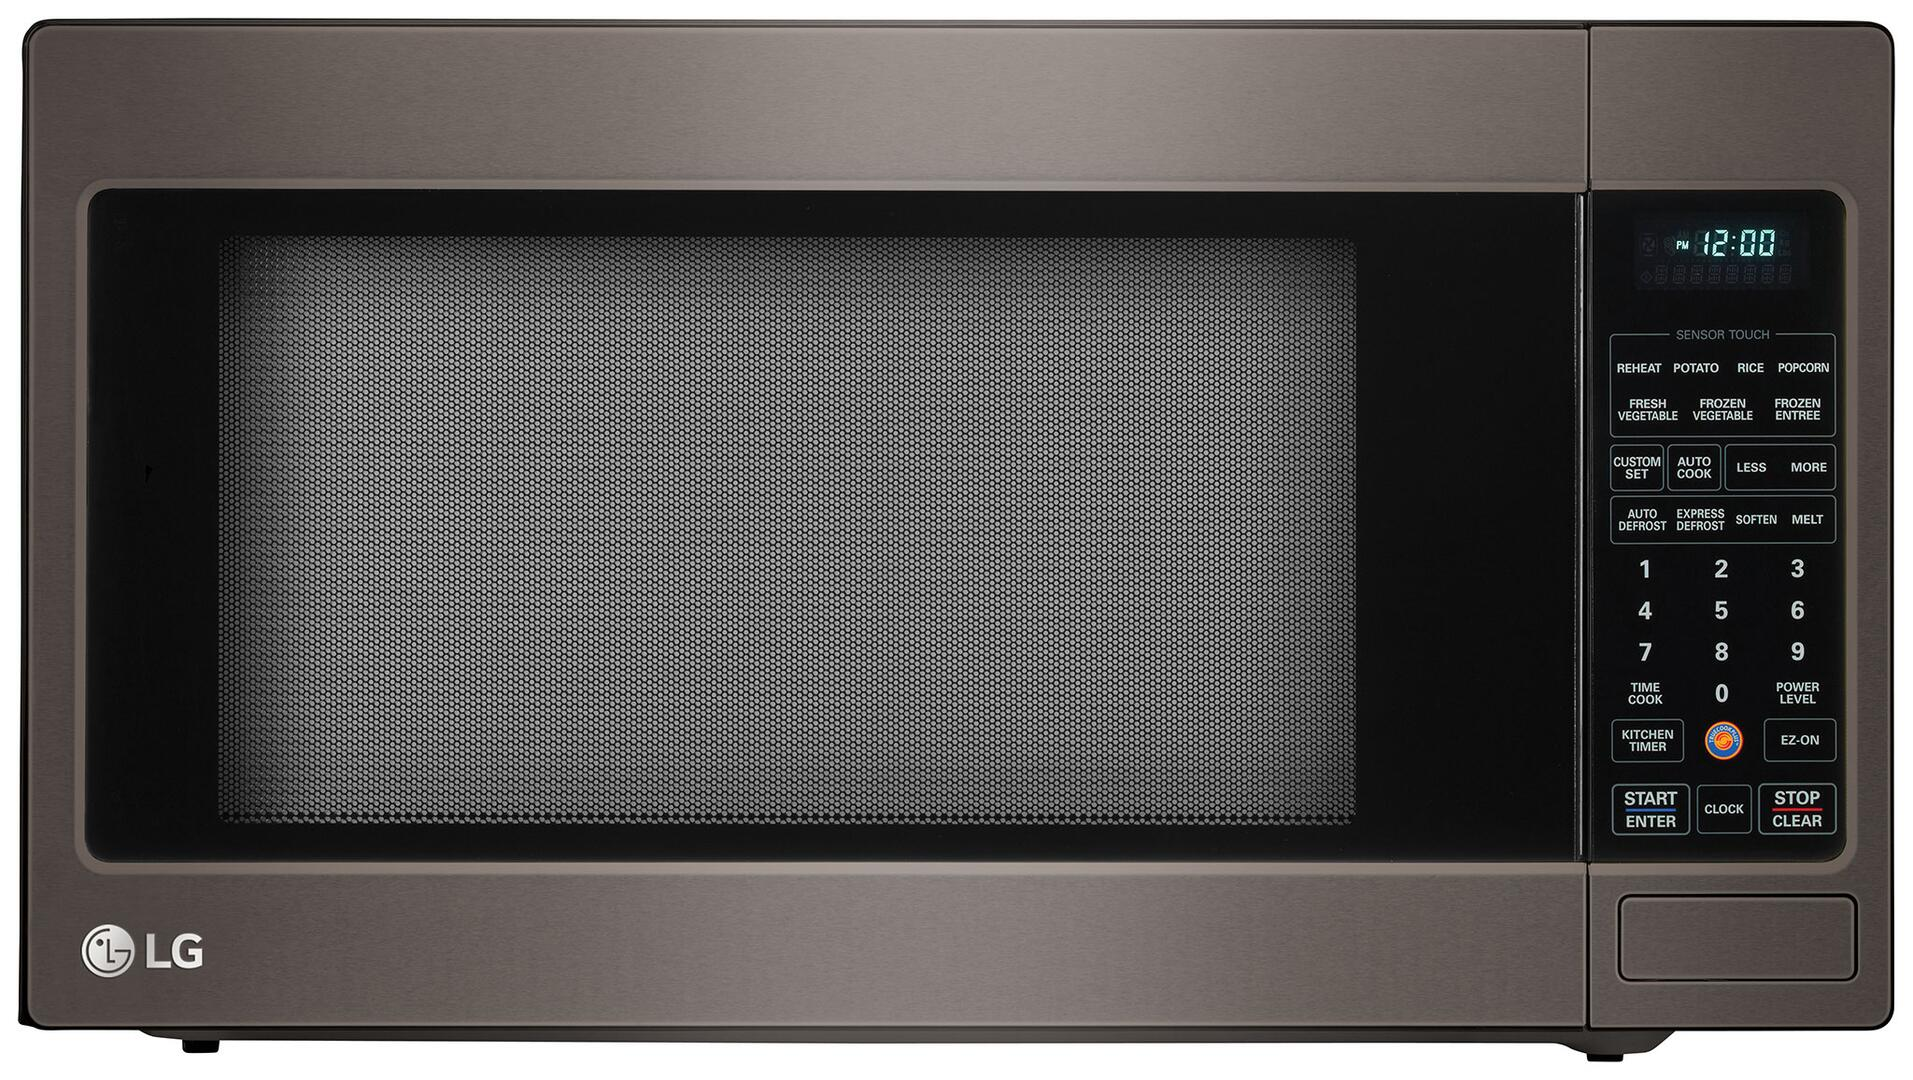 ratings for marvelous under ideas supreme out usa sharp turntable lcrtst pic lg files inspiring oven easyclean pull and with counter countertop drawer concept microwave